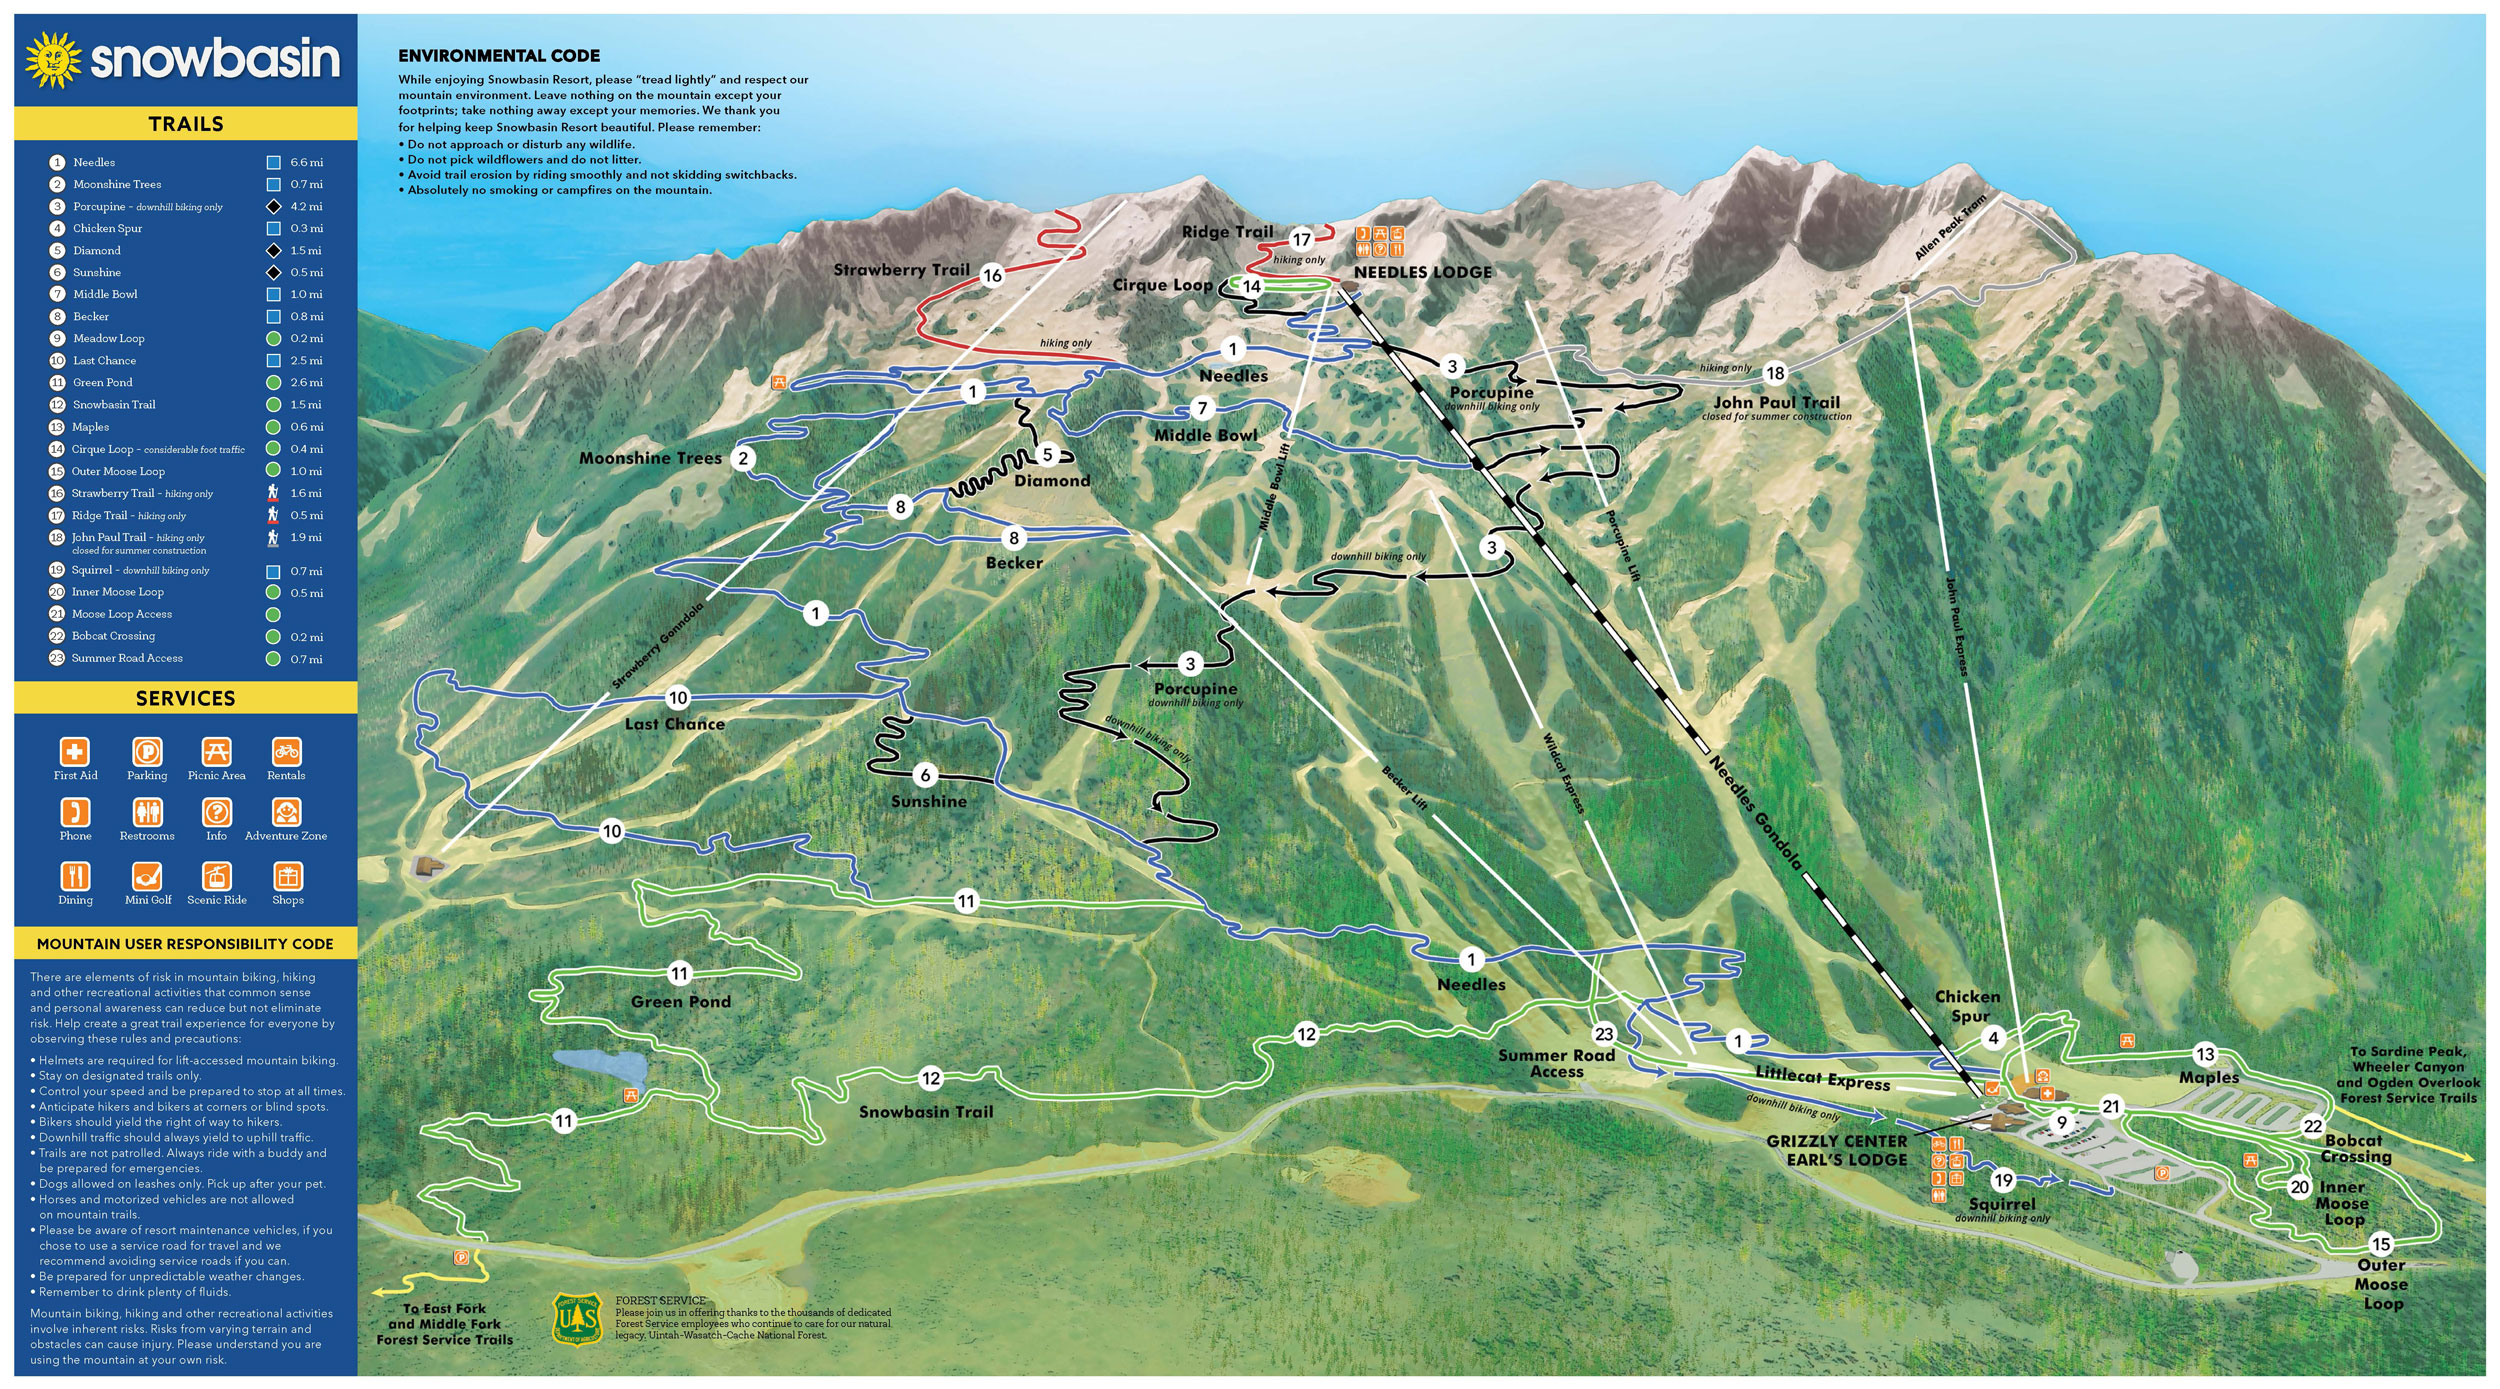 Snowbasin Summer 2019 Trail map